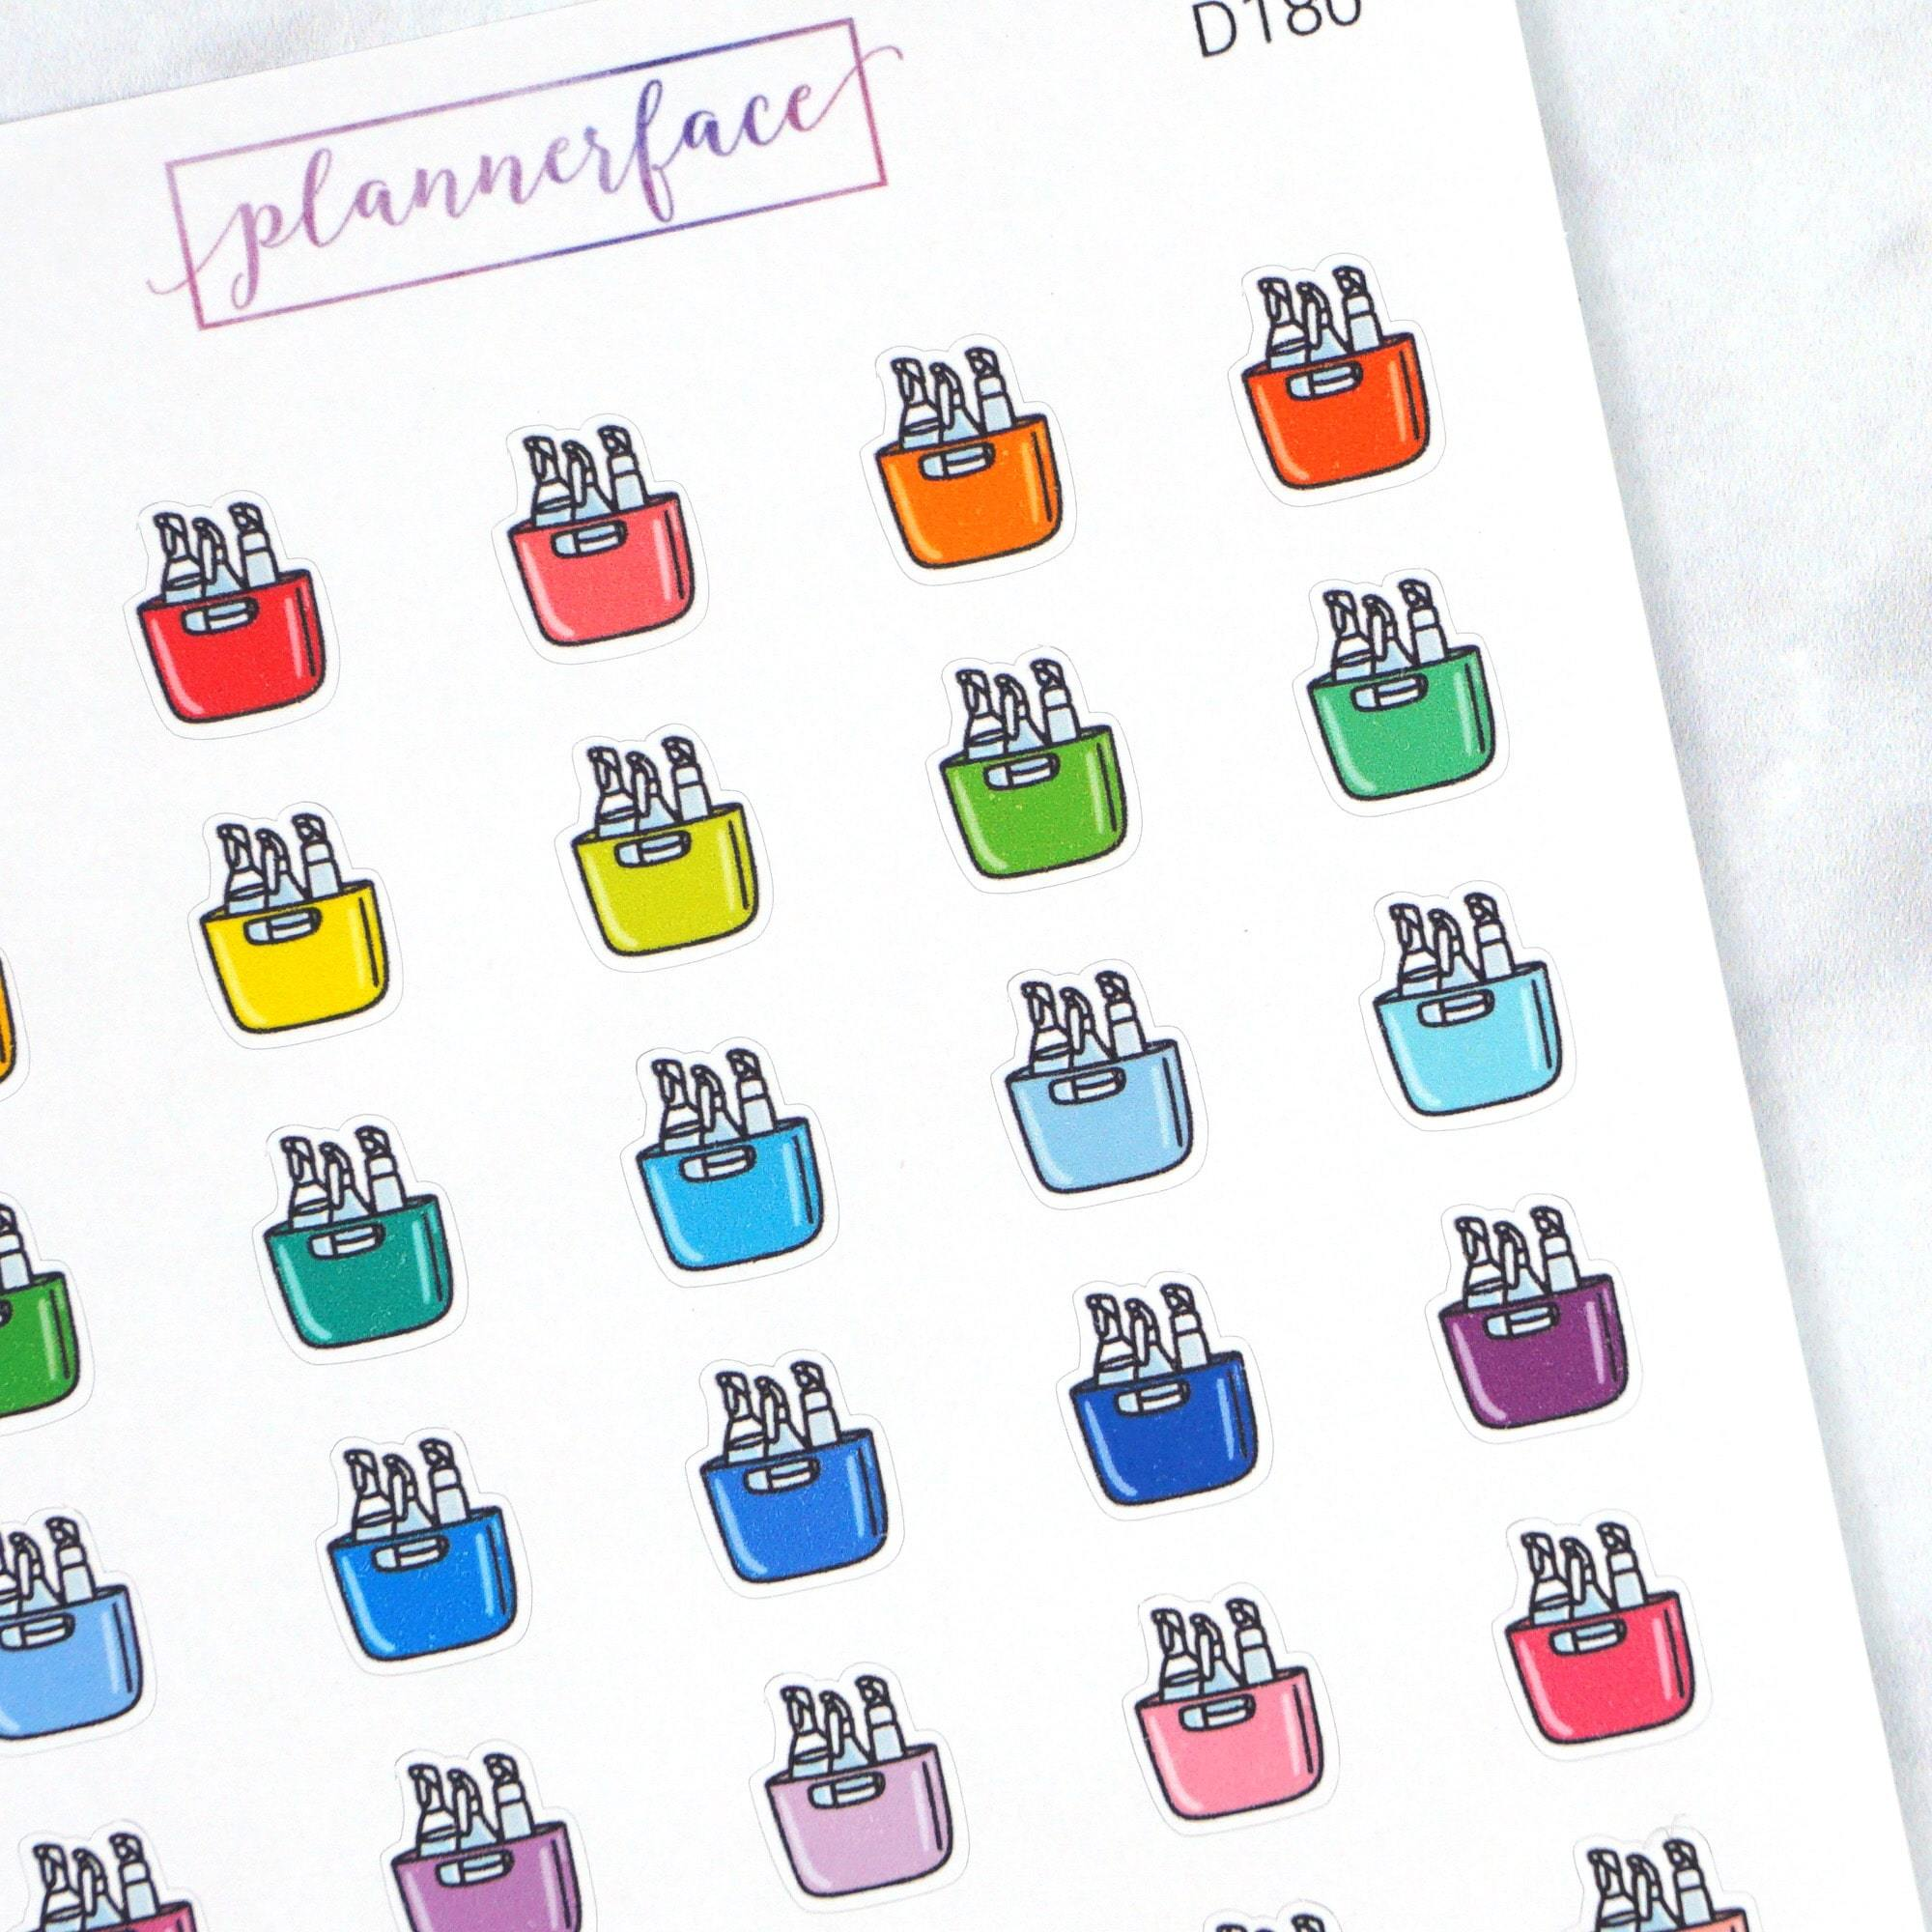 Plannerface Cleaning Caddy Multicolour Doodles Planner Stickers